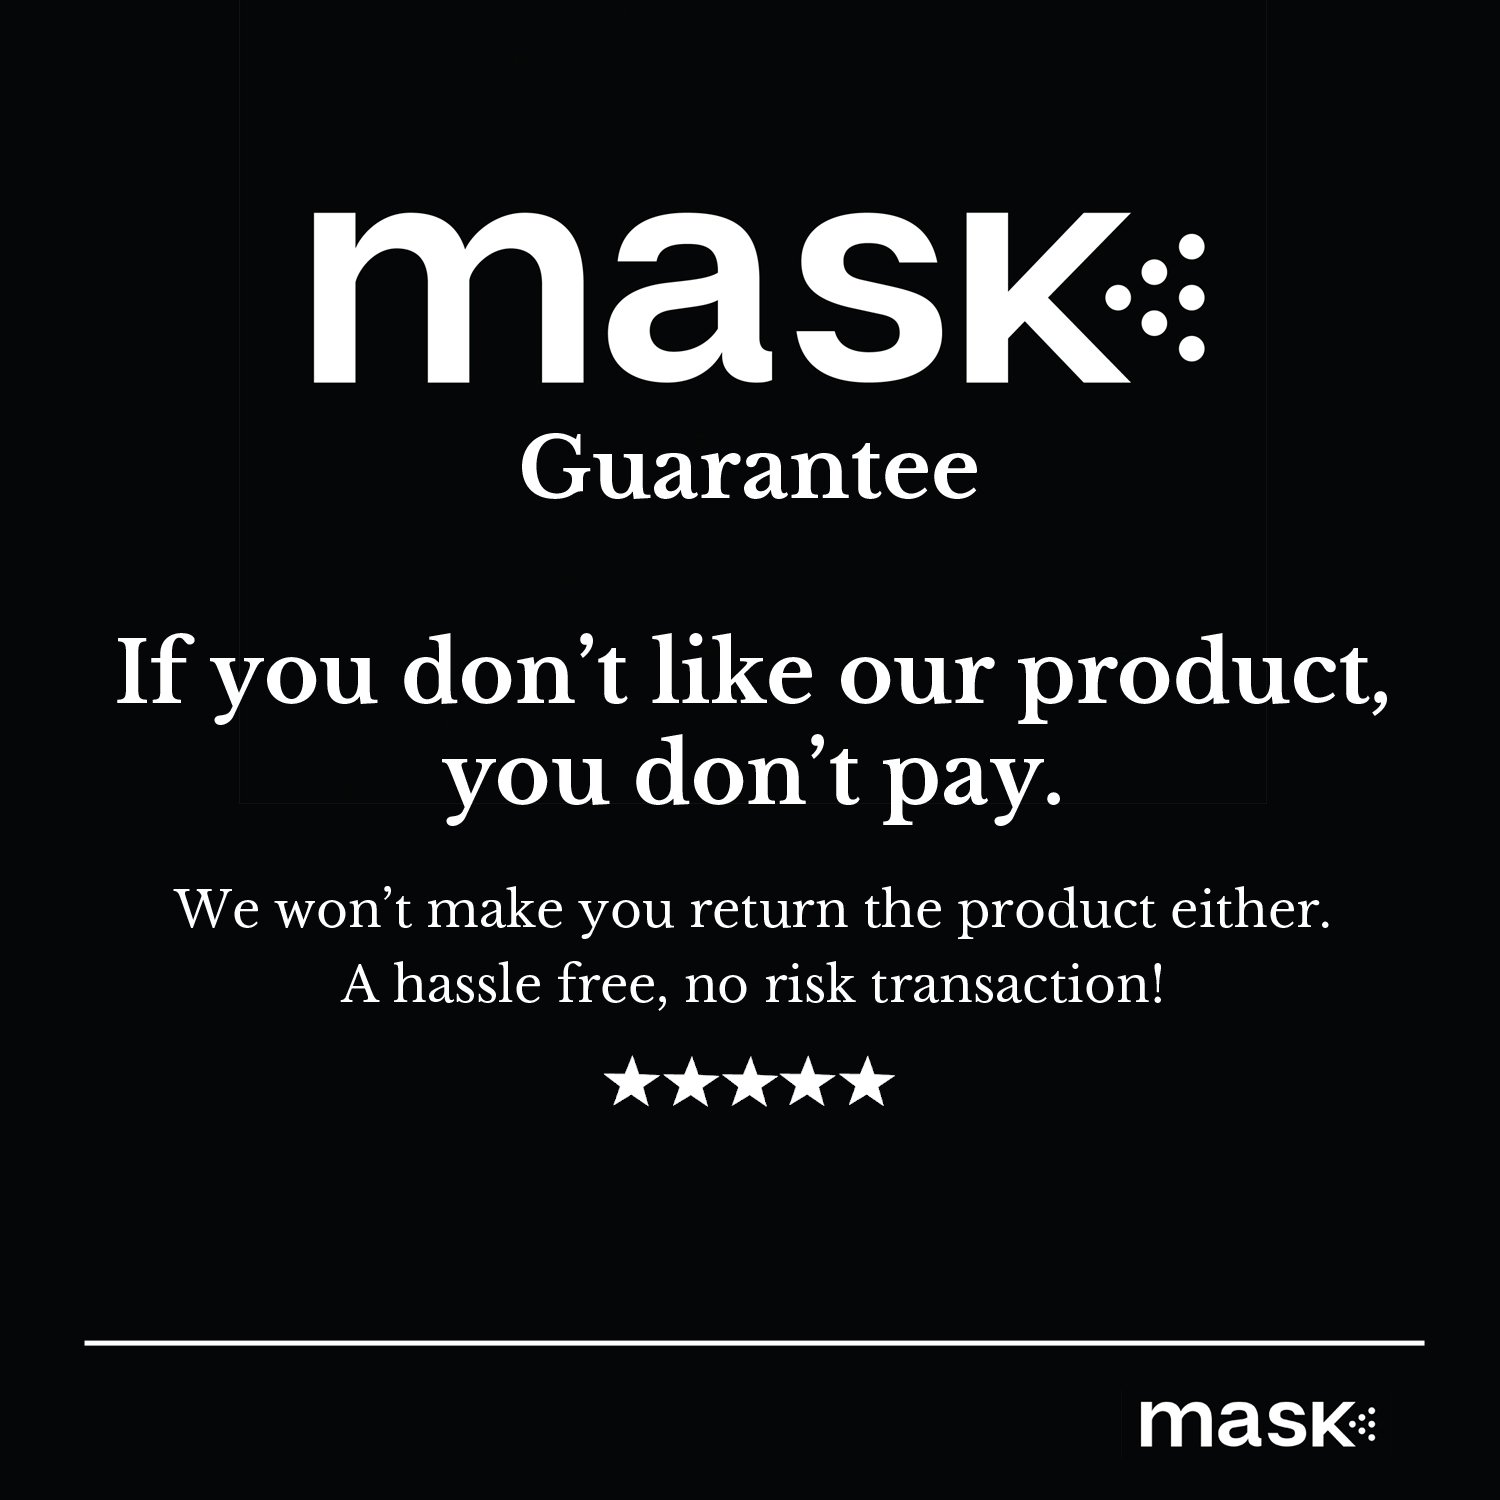 Mask Bathroom Spray Lavender and Lilac 16-Ounce Refill, Toilet Spray, Before You Go Deodorizer, Best Value Air Freshener Poo Poop Spray, Perfect for Travel, Risk Free Offer! by Mask (Image #5)